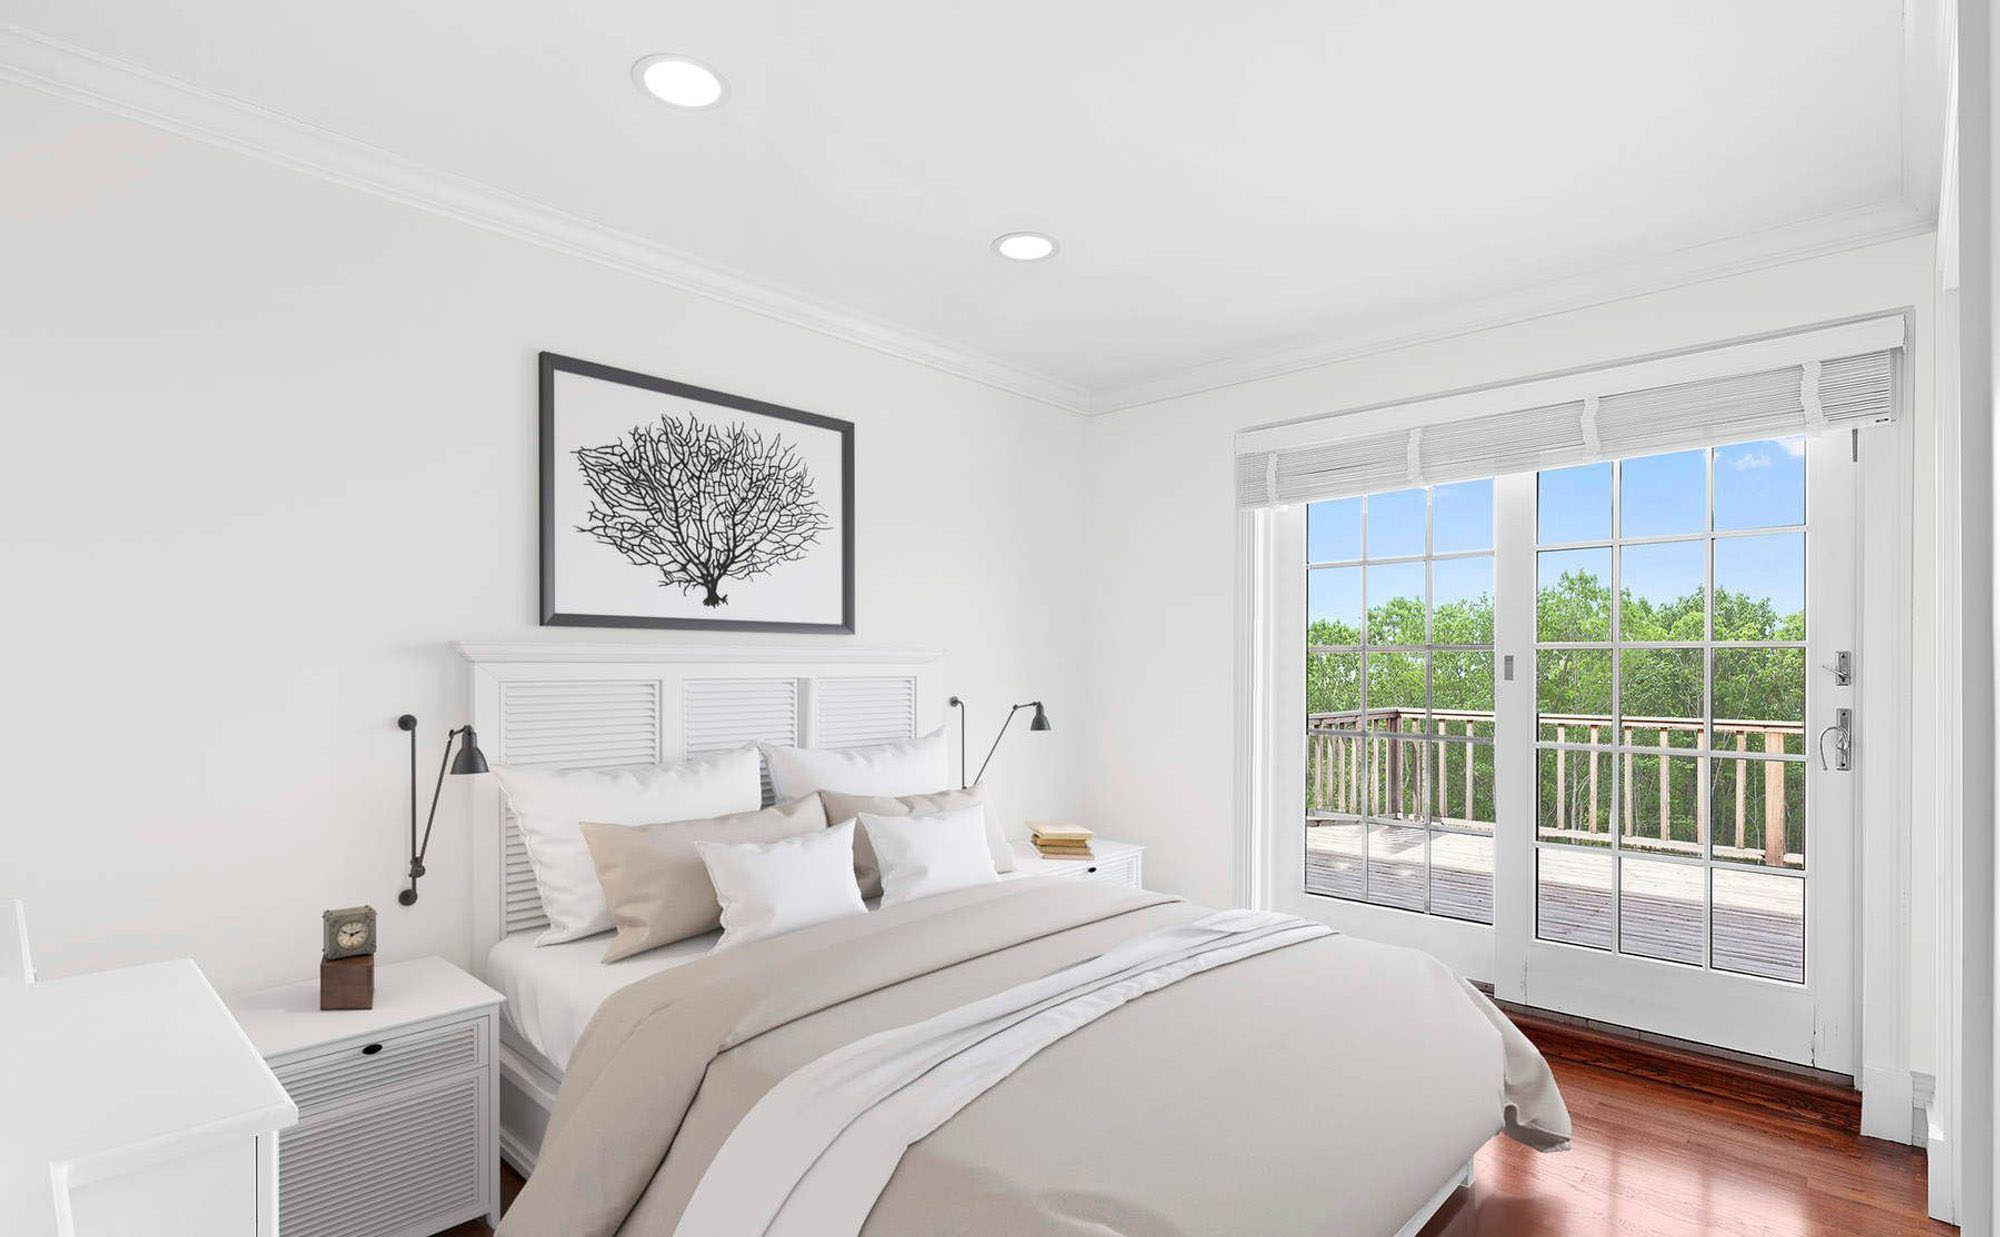 The light colors used in the small bedroom design makes the room feel larger than it is.